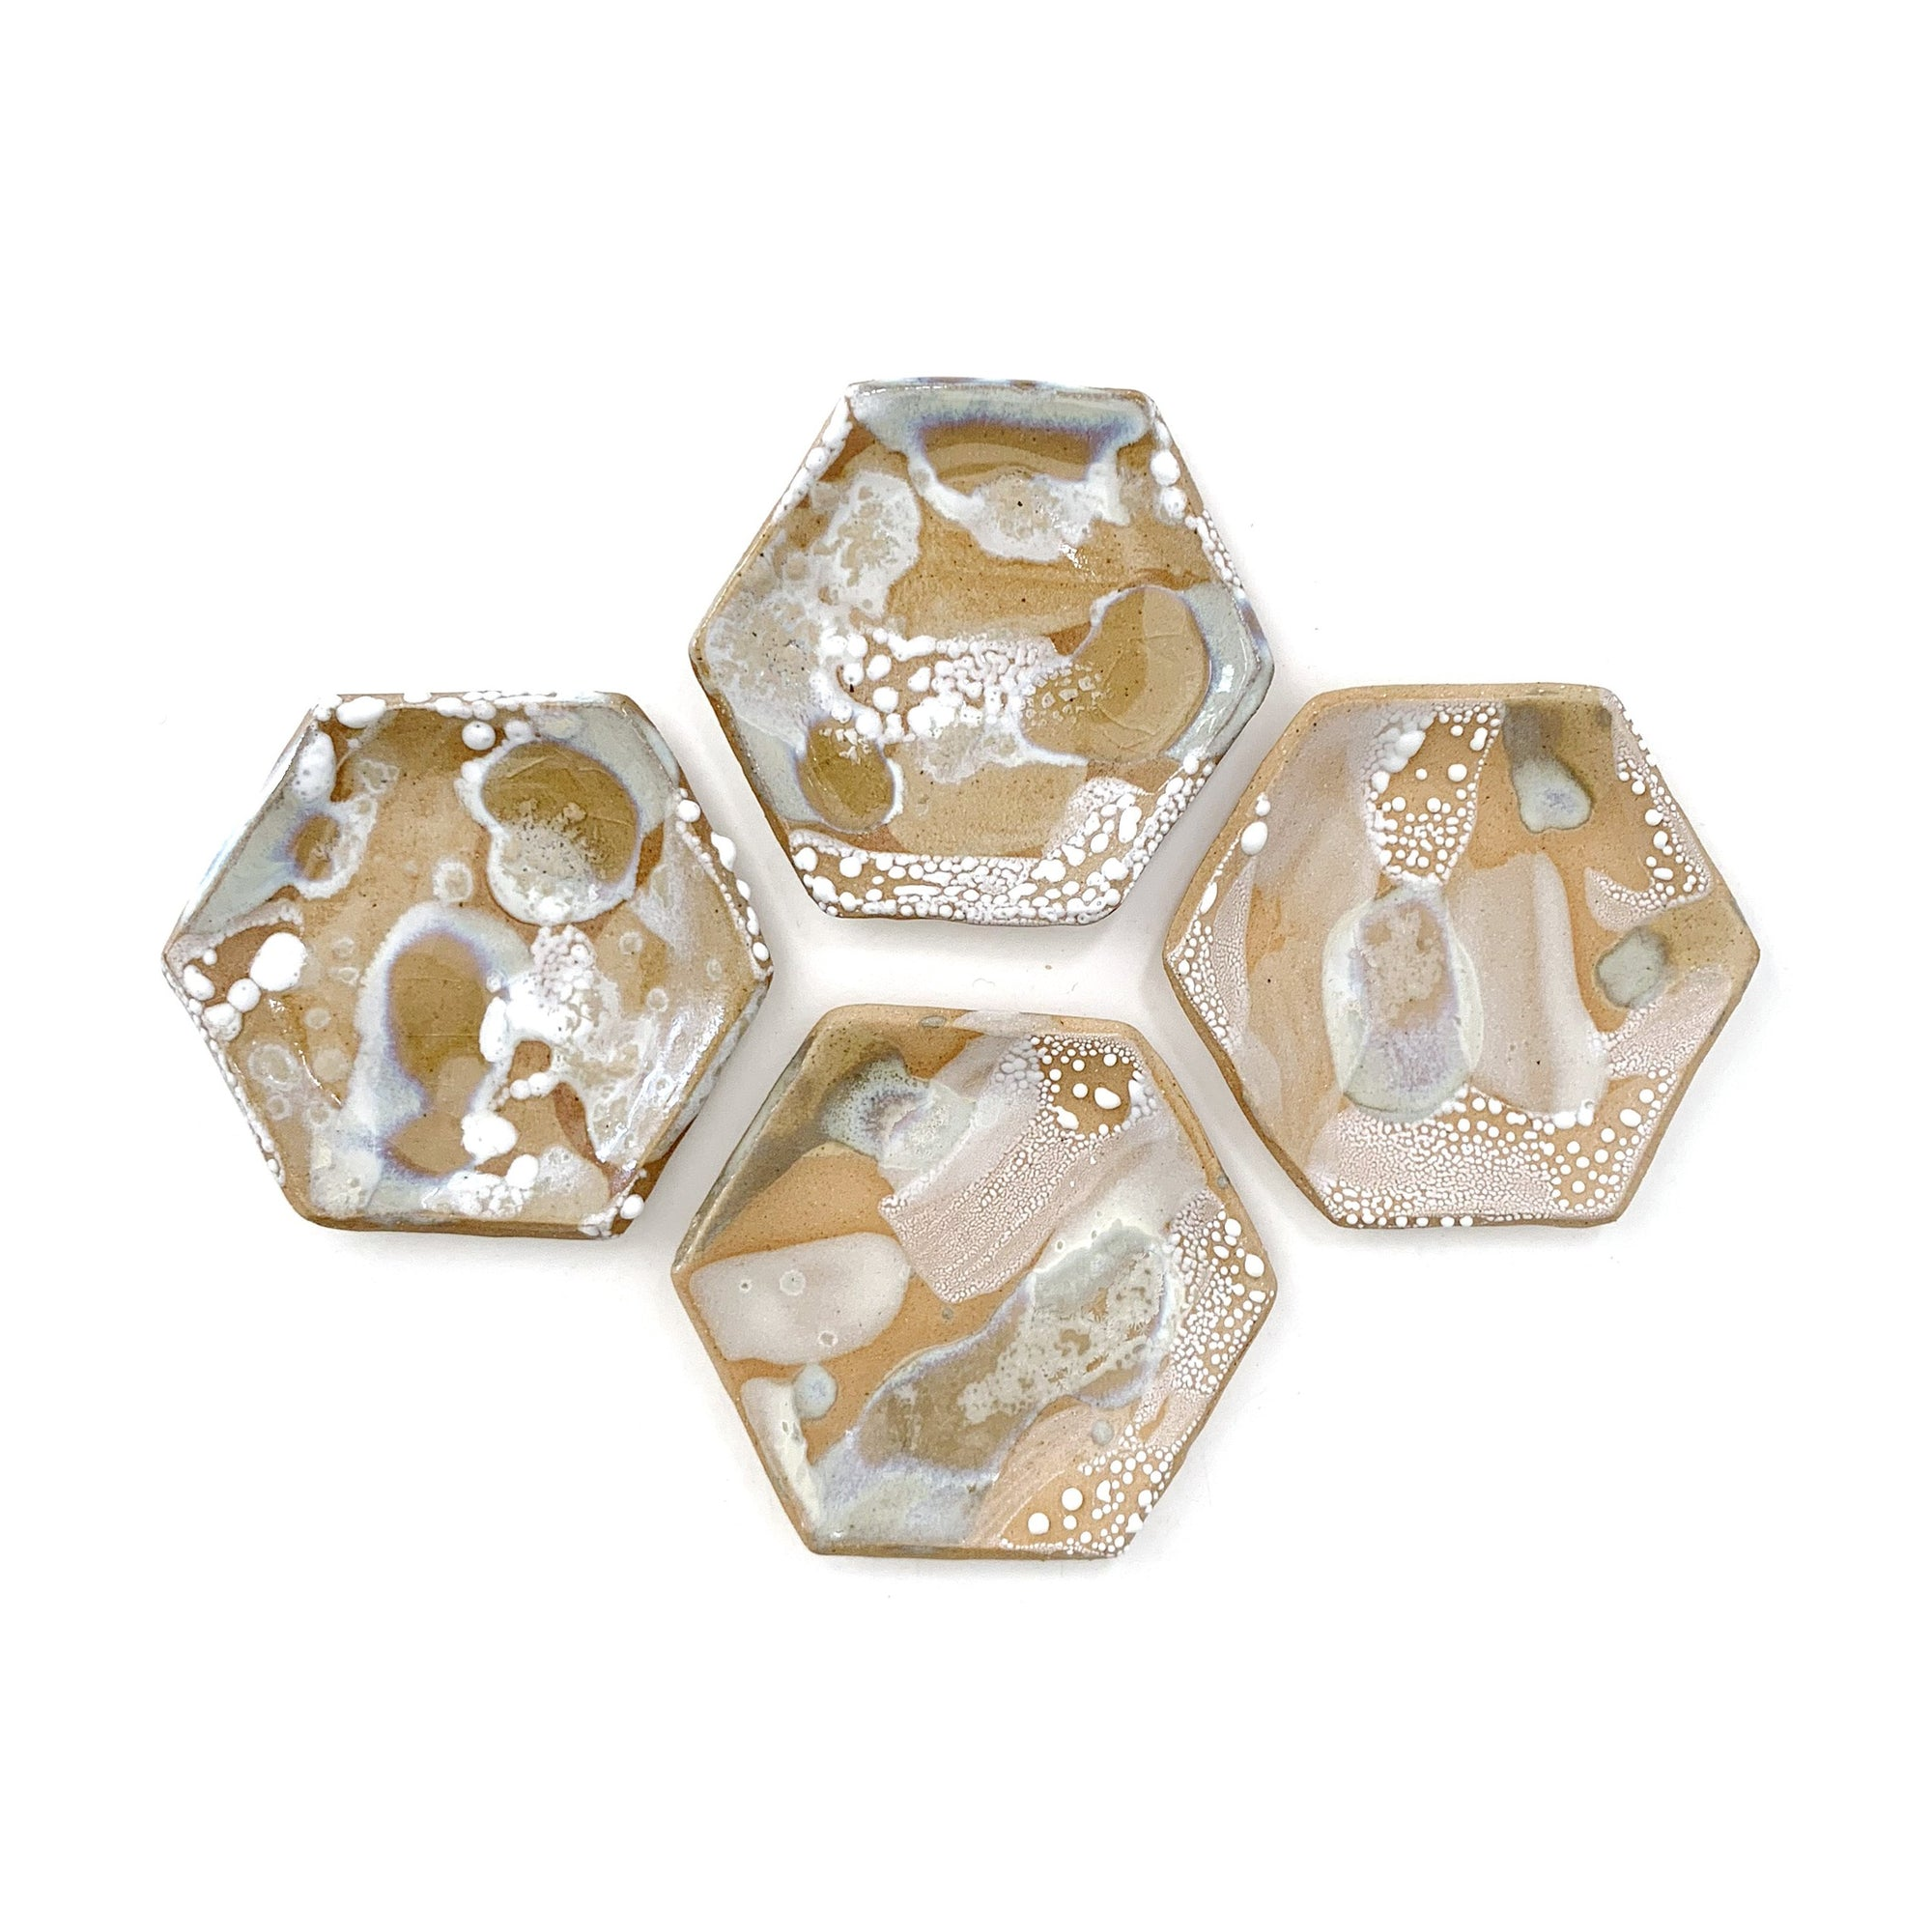 Golden and White Hexagonal Ring Dish